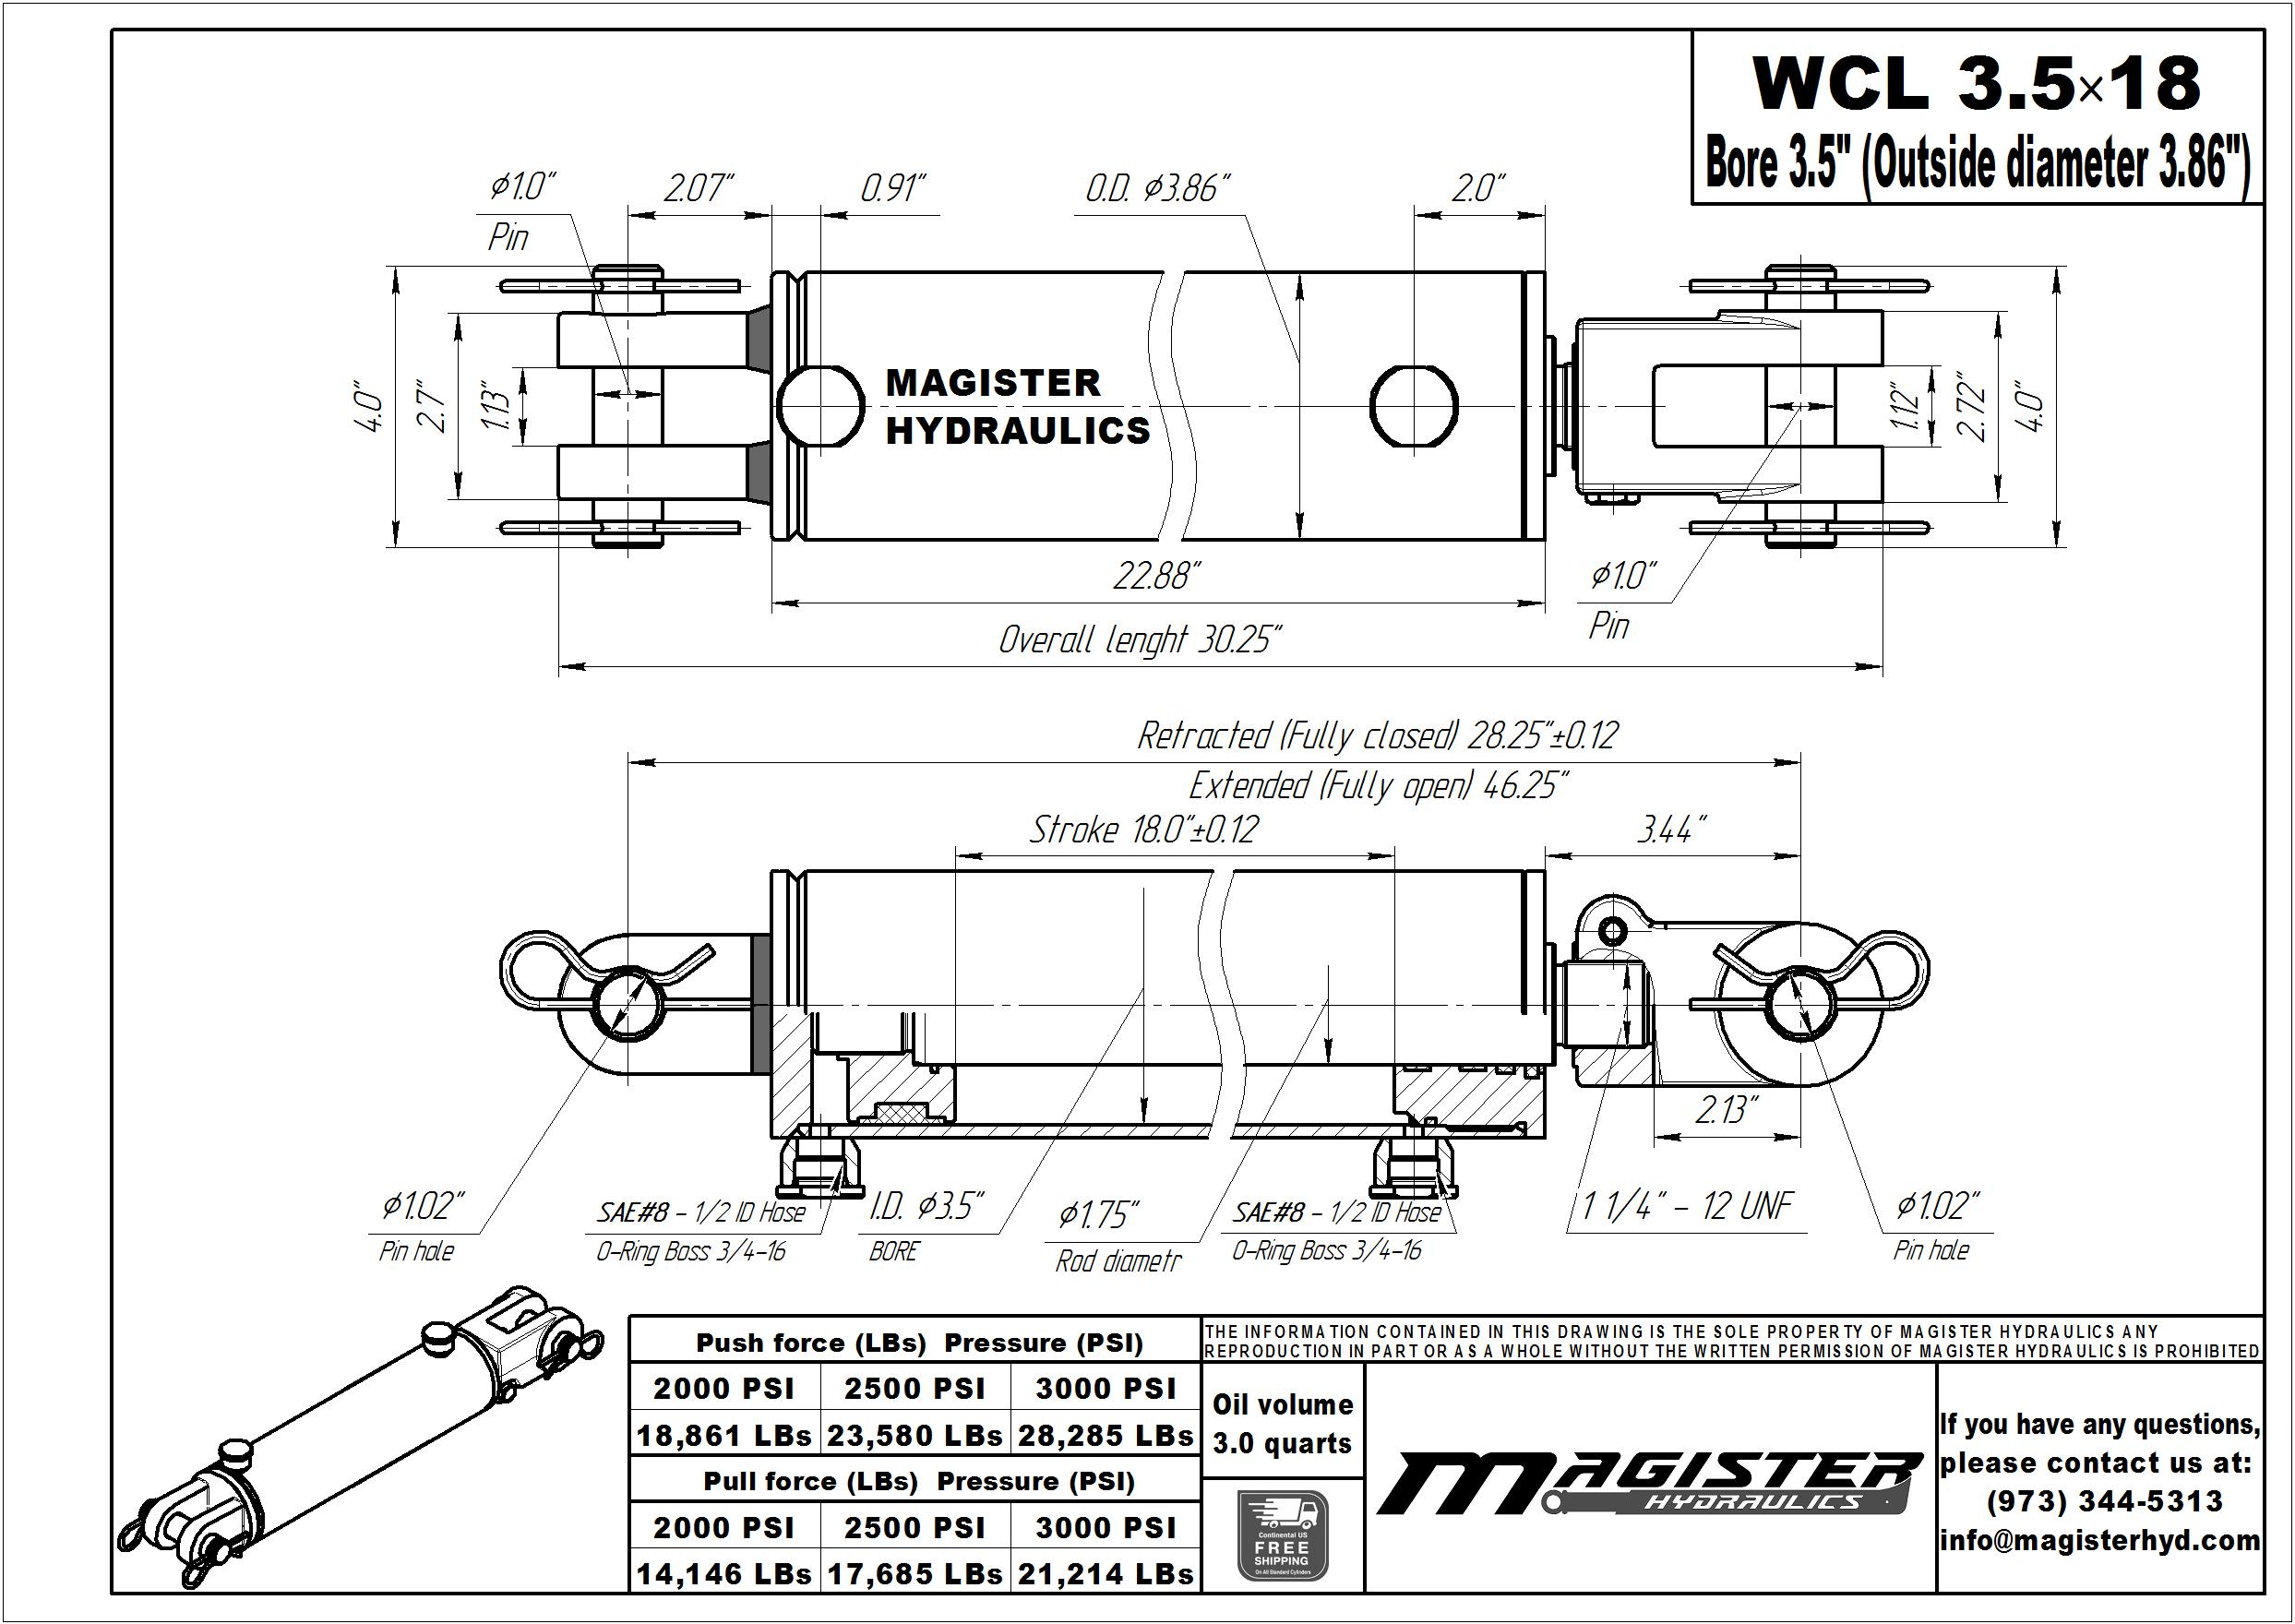 3.5 bore x 18 stroke hydraulic cylinder, welded clevis double acting cylinder | Magister Hydraulics